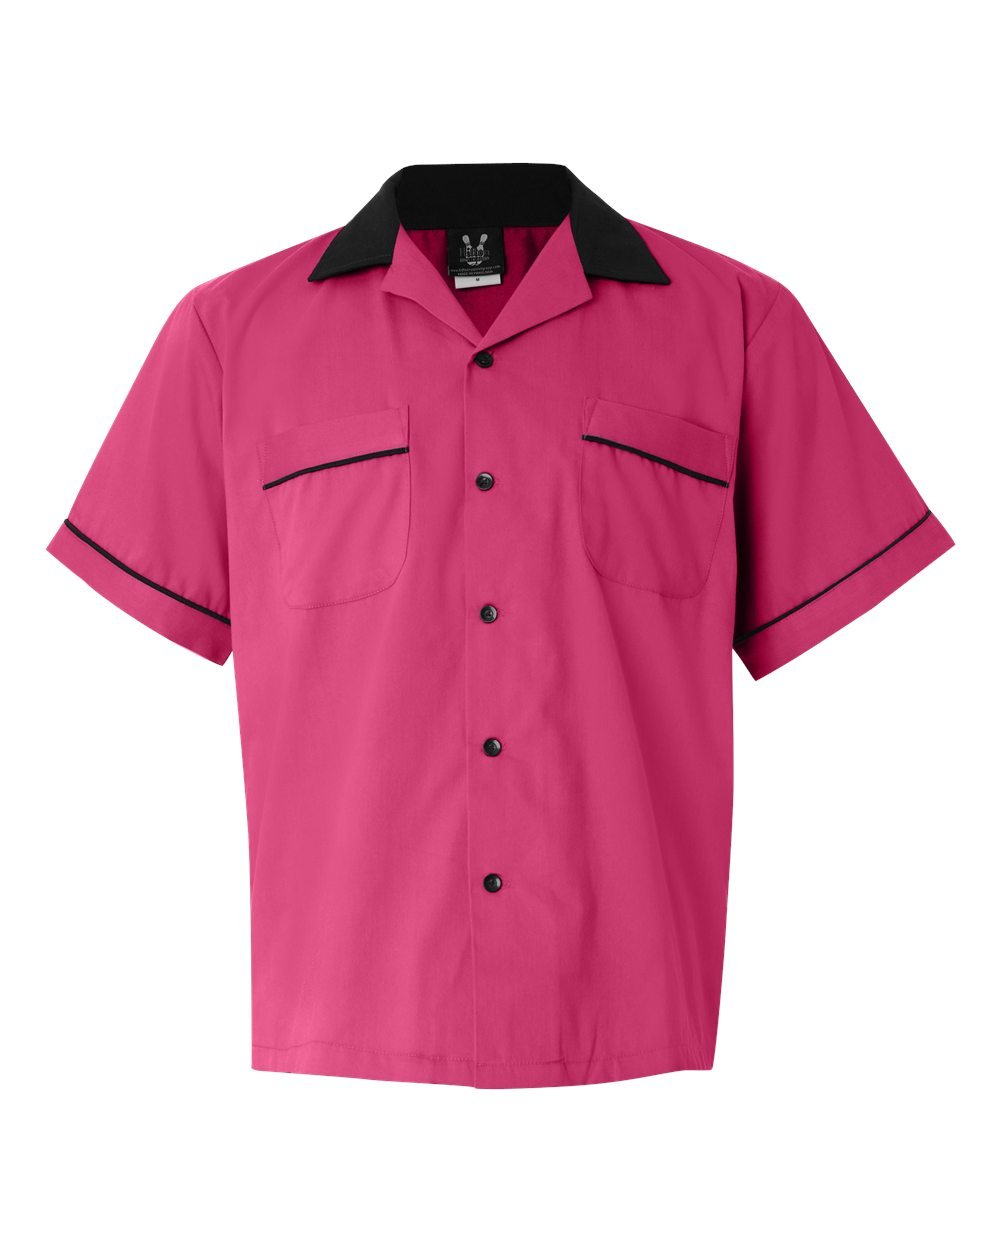 Hilton Bowling Retro Gm Legend, Pink/Black, Medium by Hilton